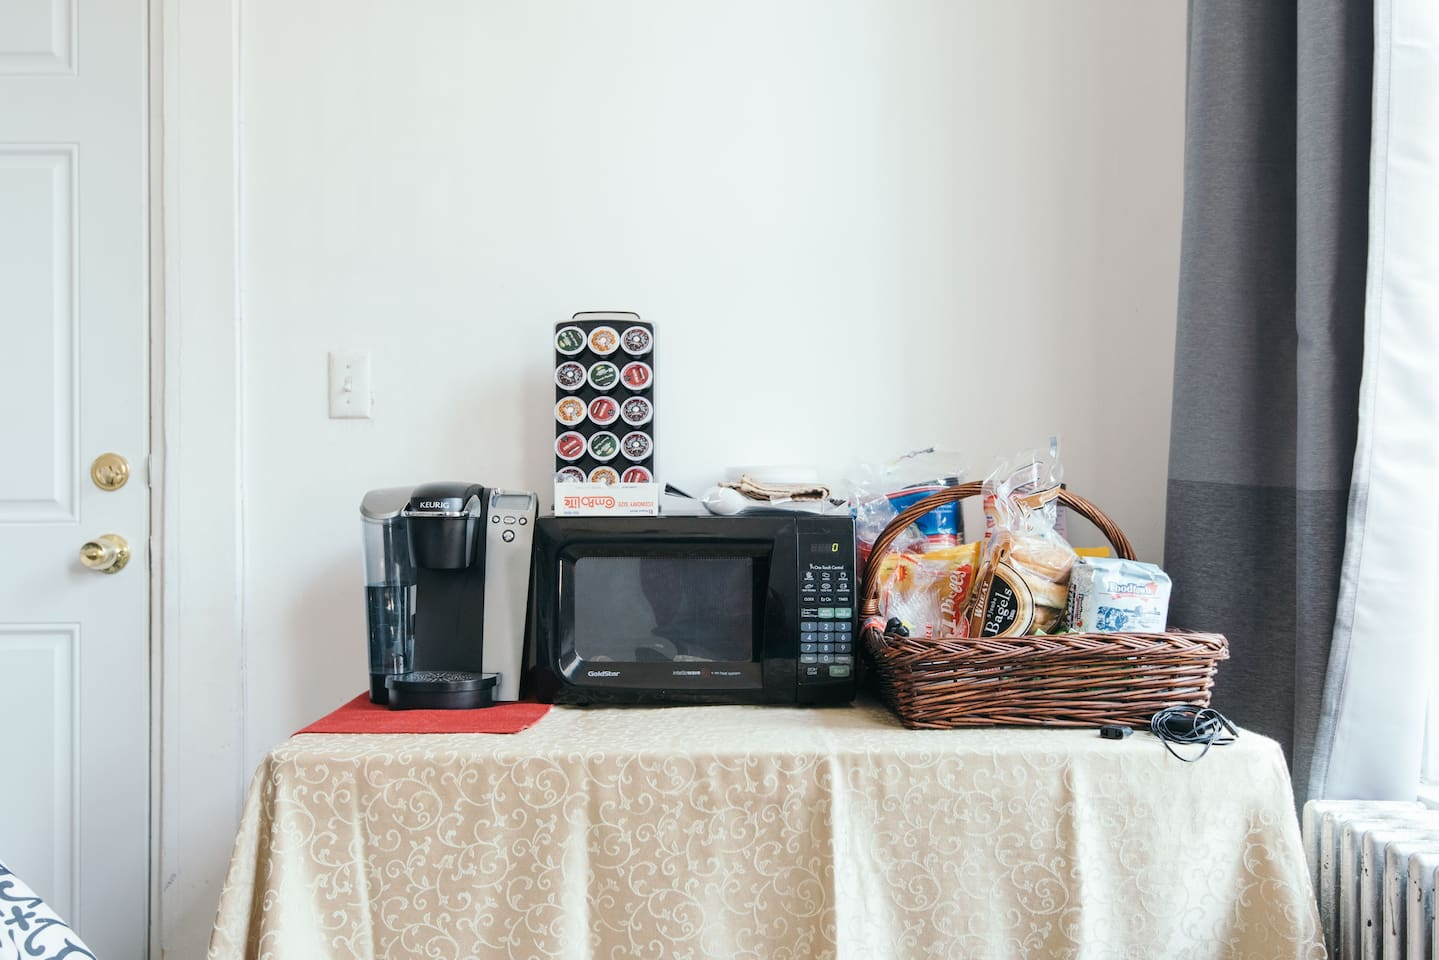 Keurig coffee maker with a variety of coffees available to you as well as different teas, oatmeal, and bagels.  A microwave to cook/warm things up